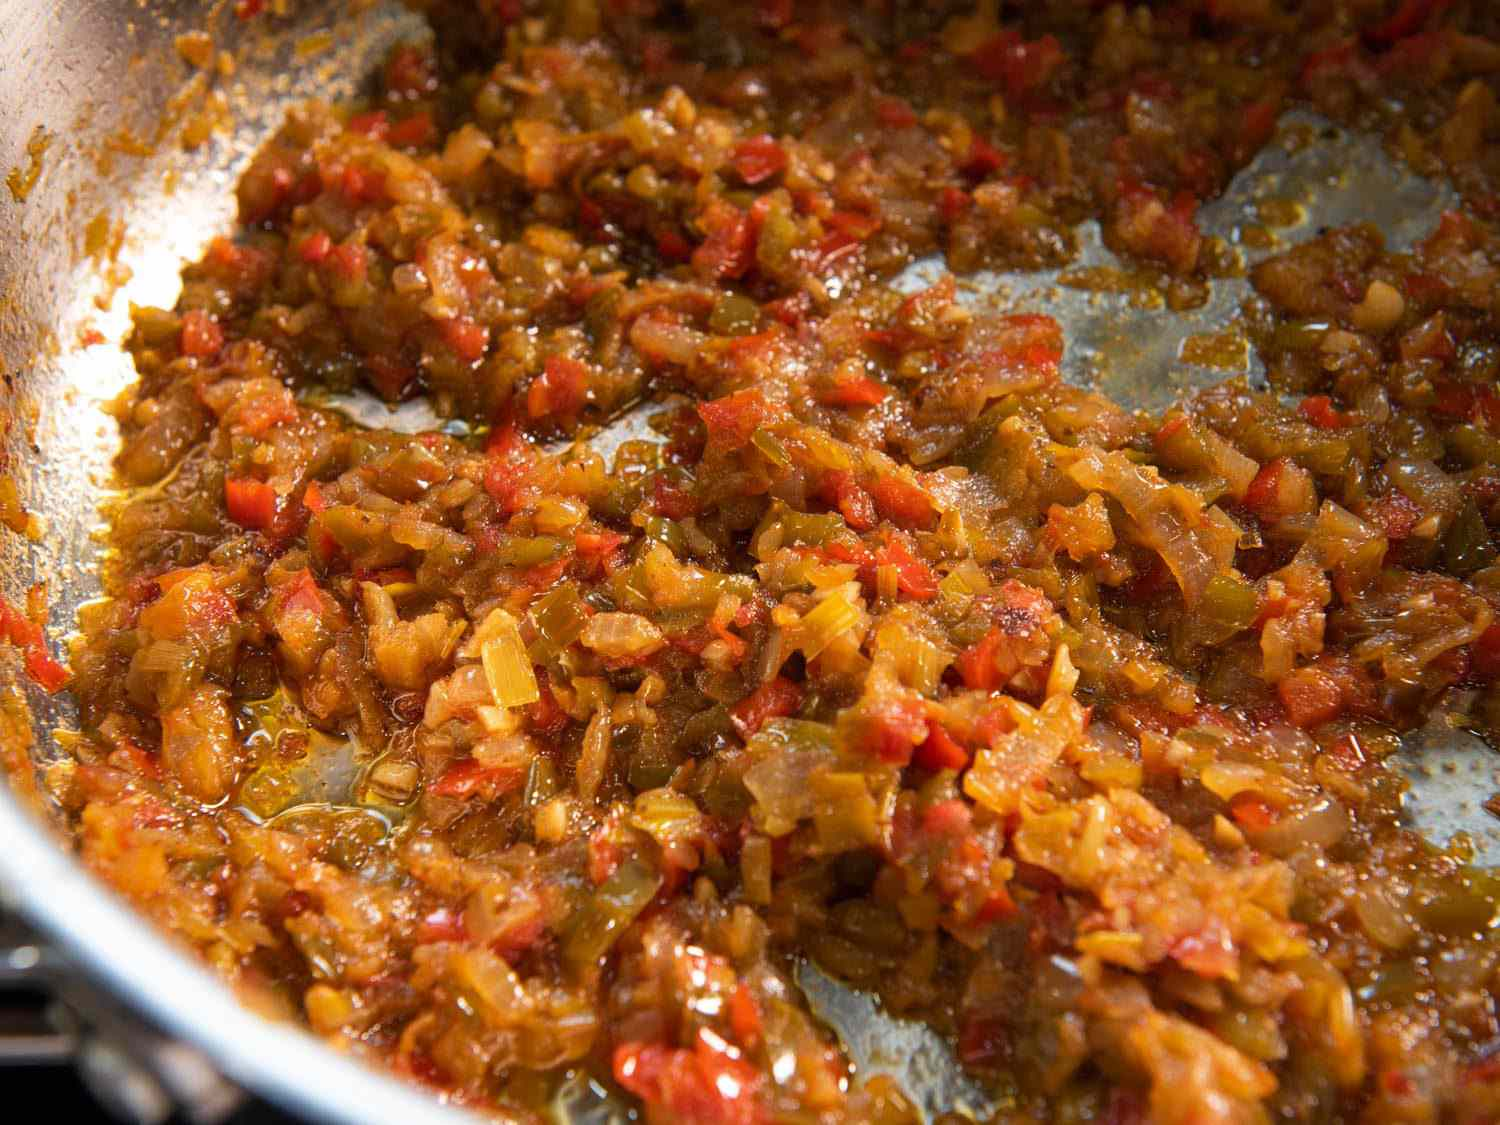 A sofrito made from aromatic vegetables, showing them nicely caramelized and ready to be used in a paella